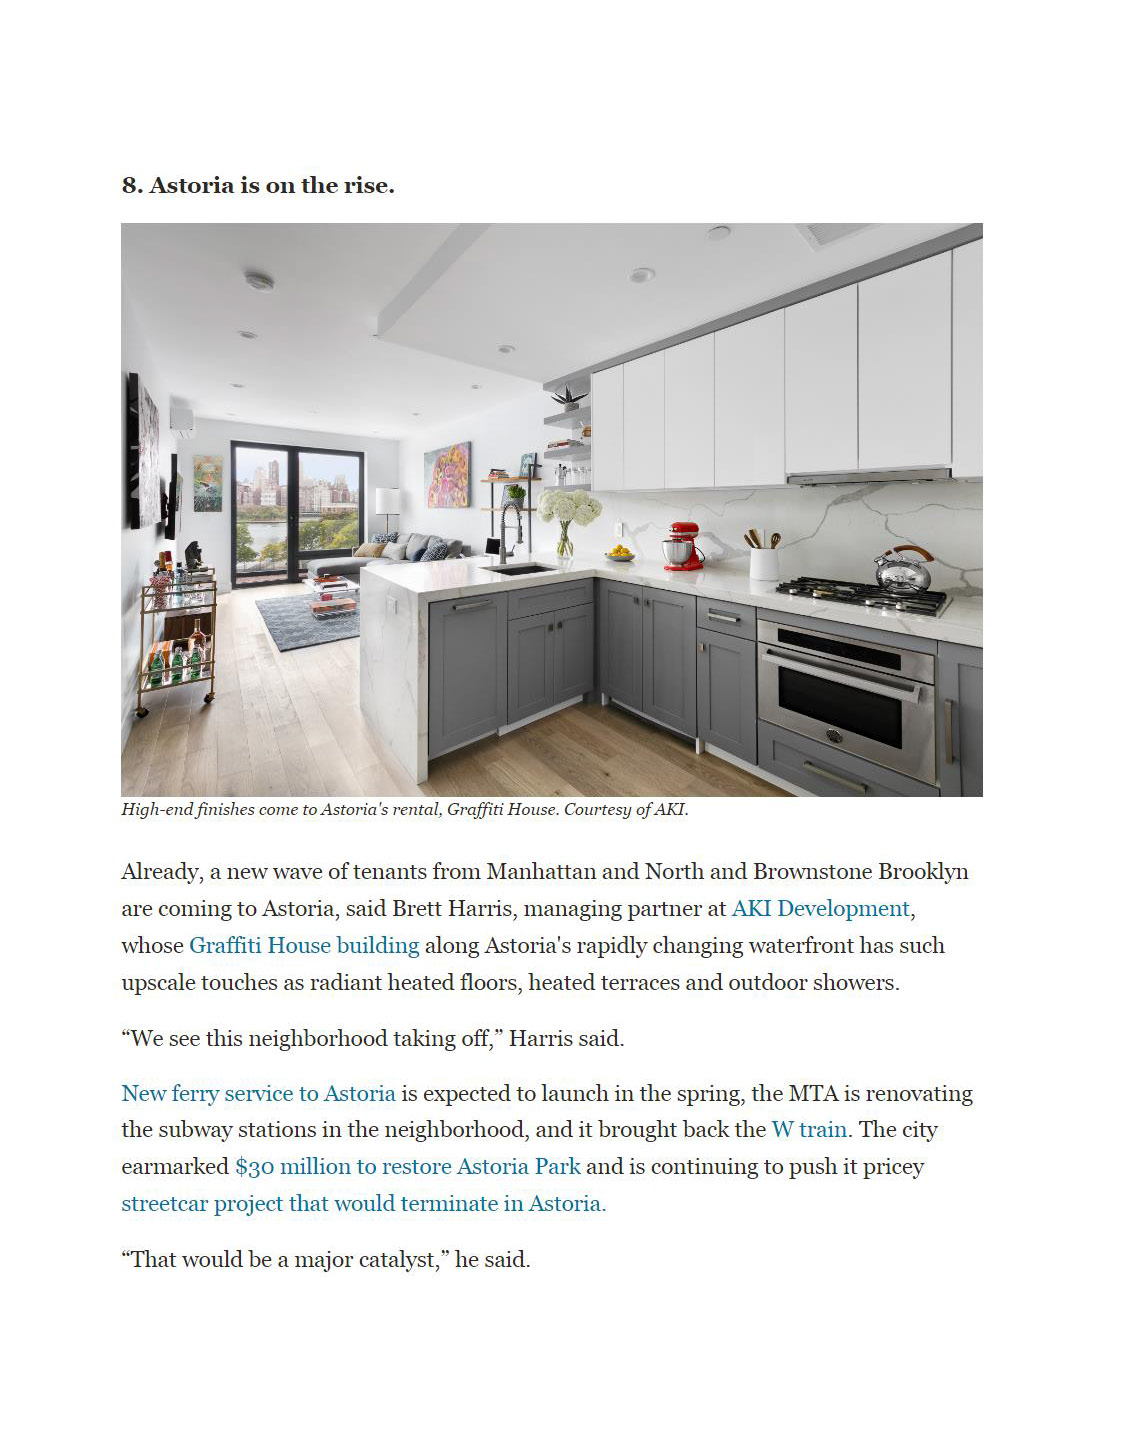 dnainfo-17-predictions-for-nycs-residential-real-estate-in-2017-12-20-1_page_5